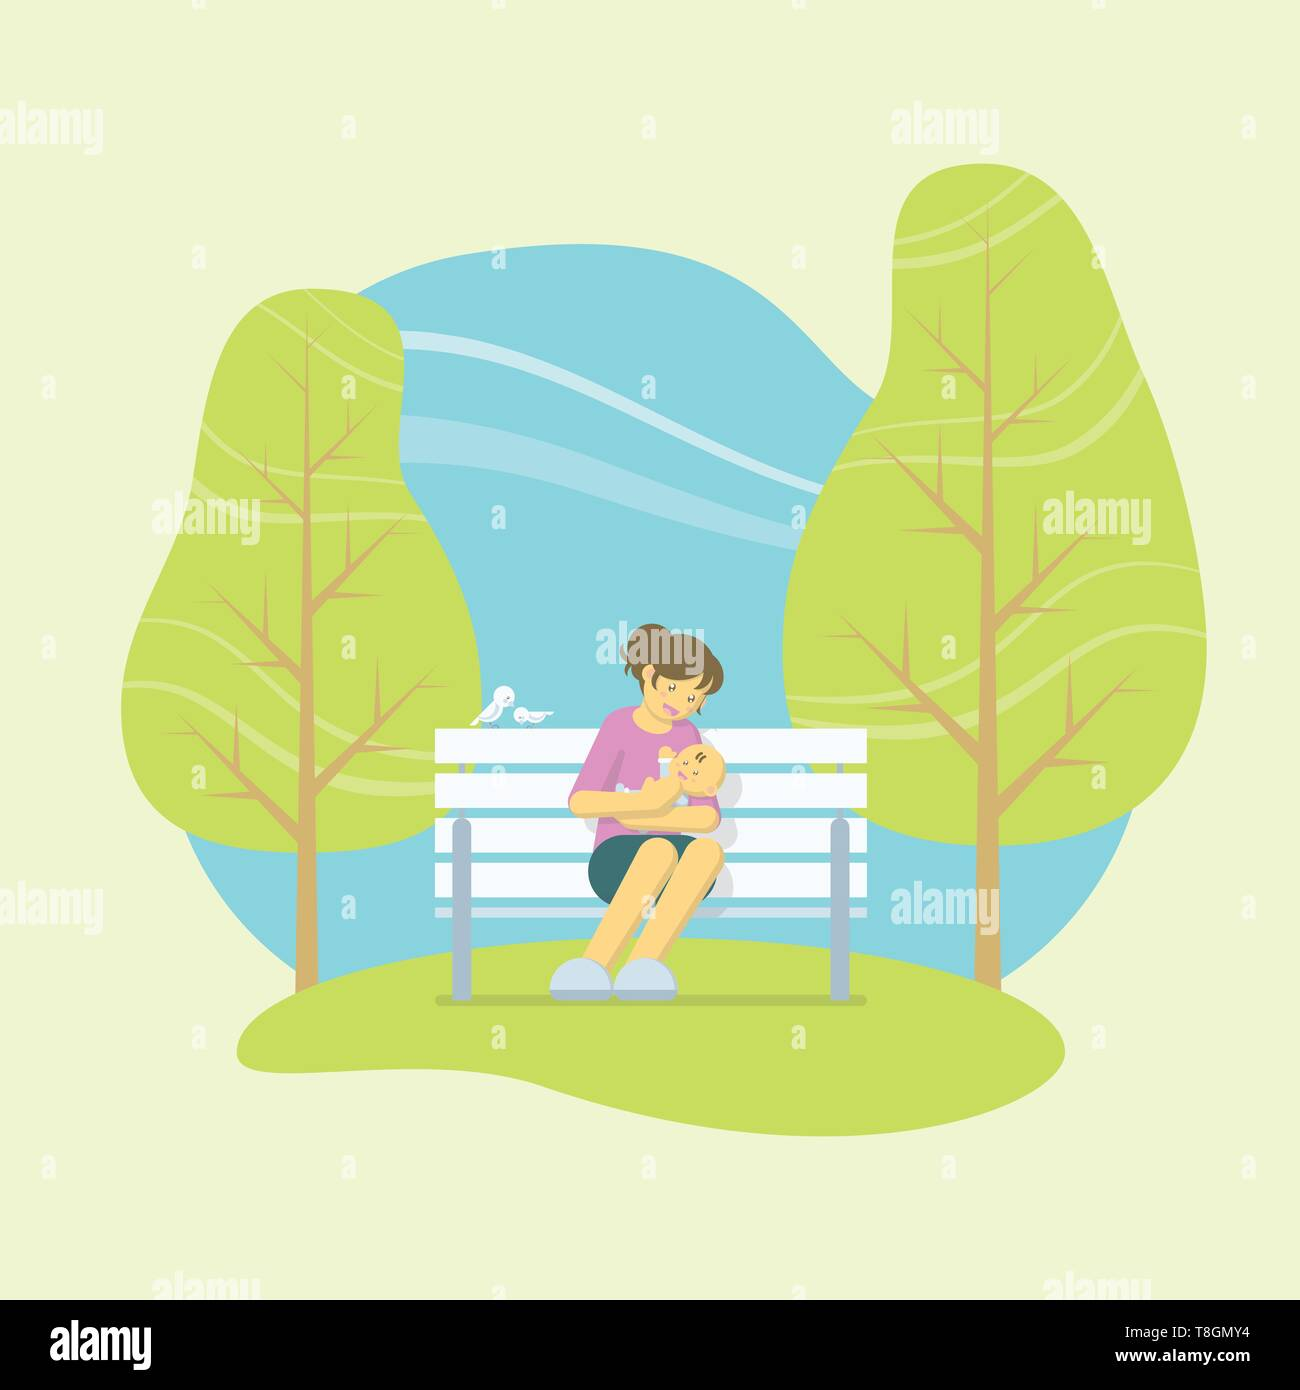 Mother playing with a baby in her arms while sitting on a white bench in a park with birds and trees in flat style - Stock Vector